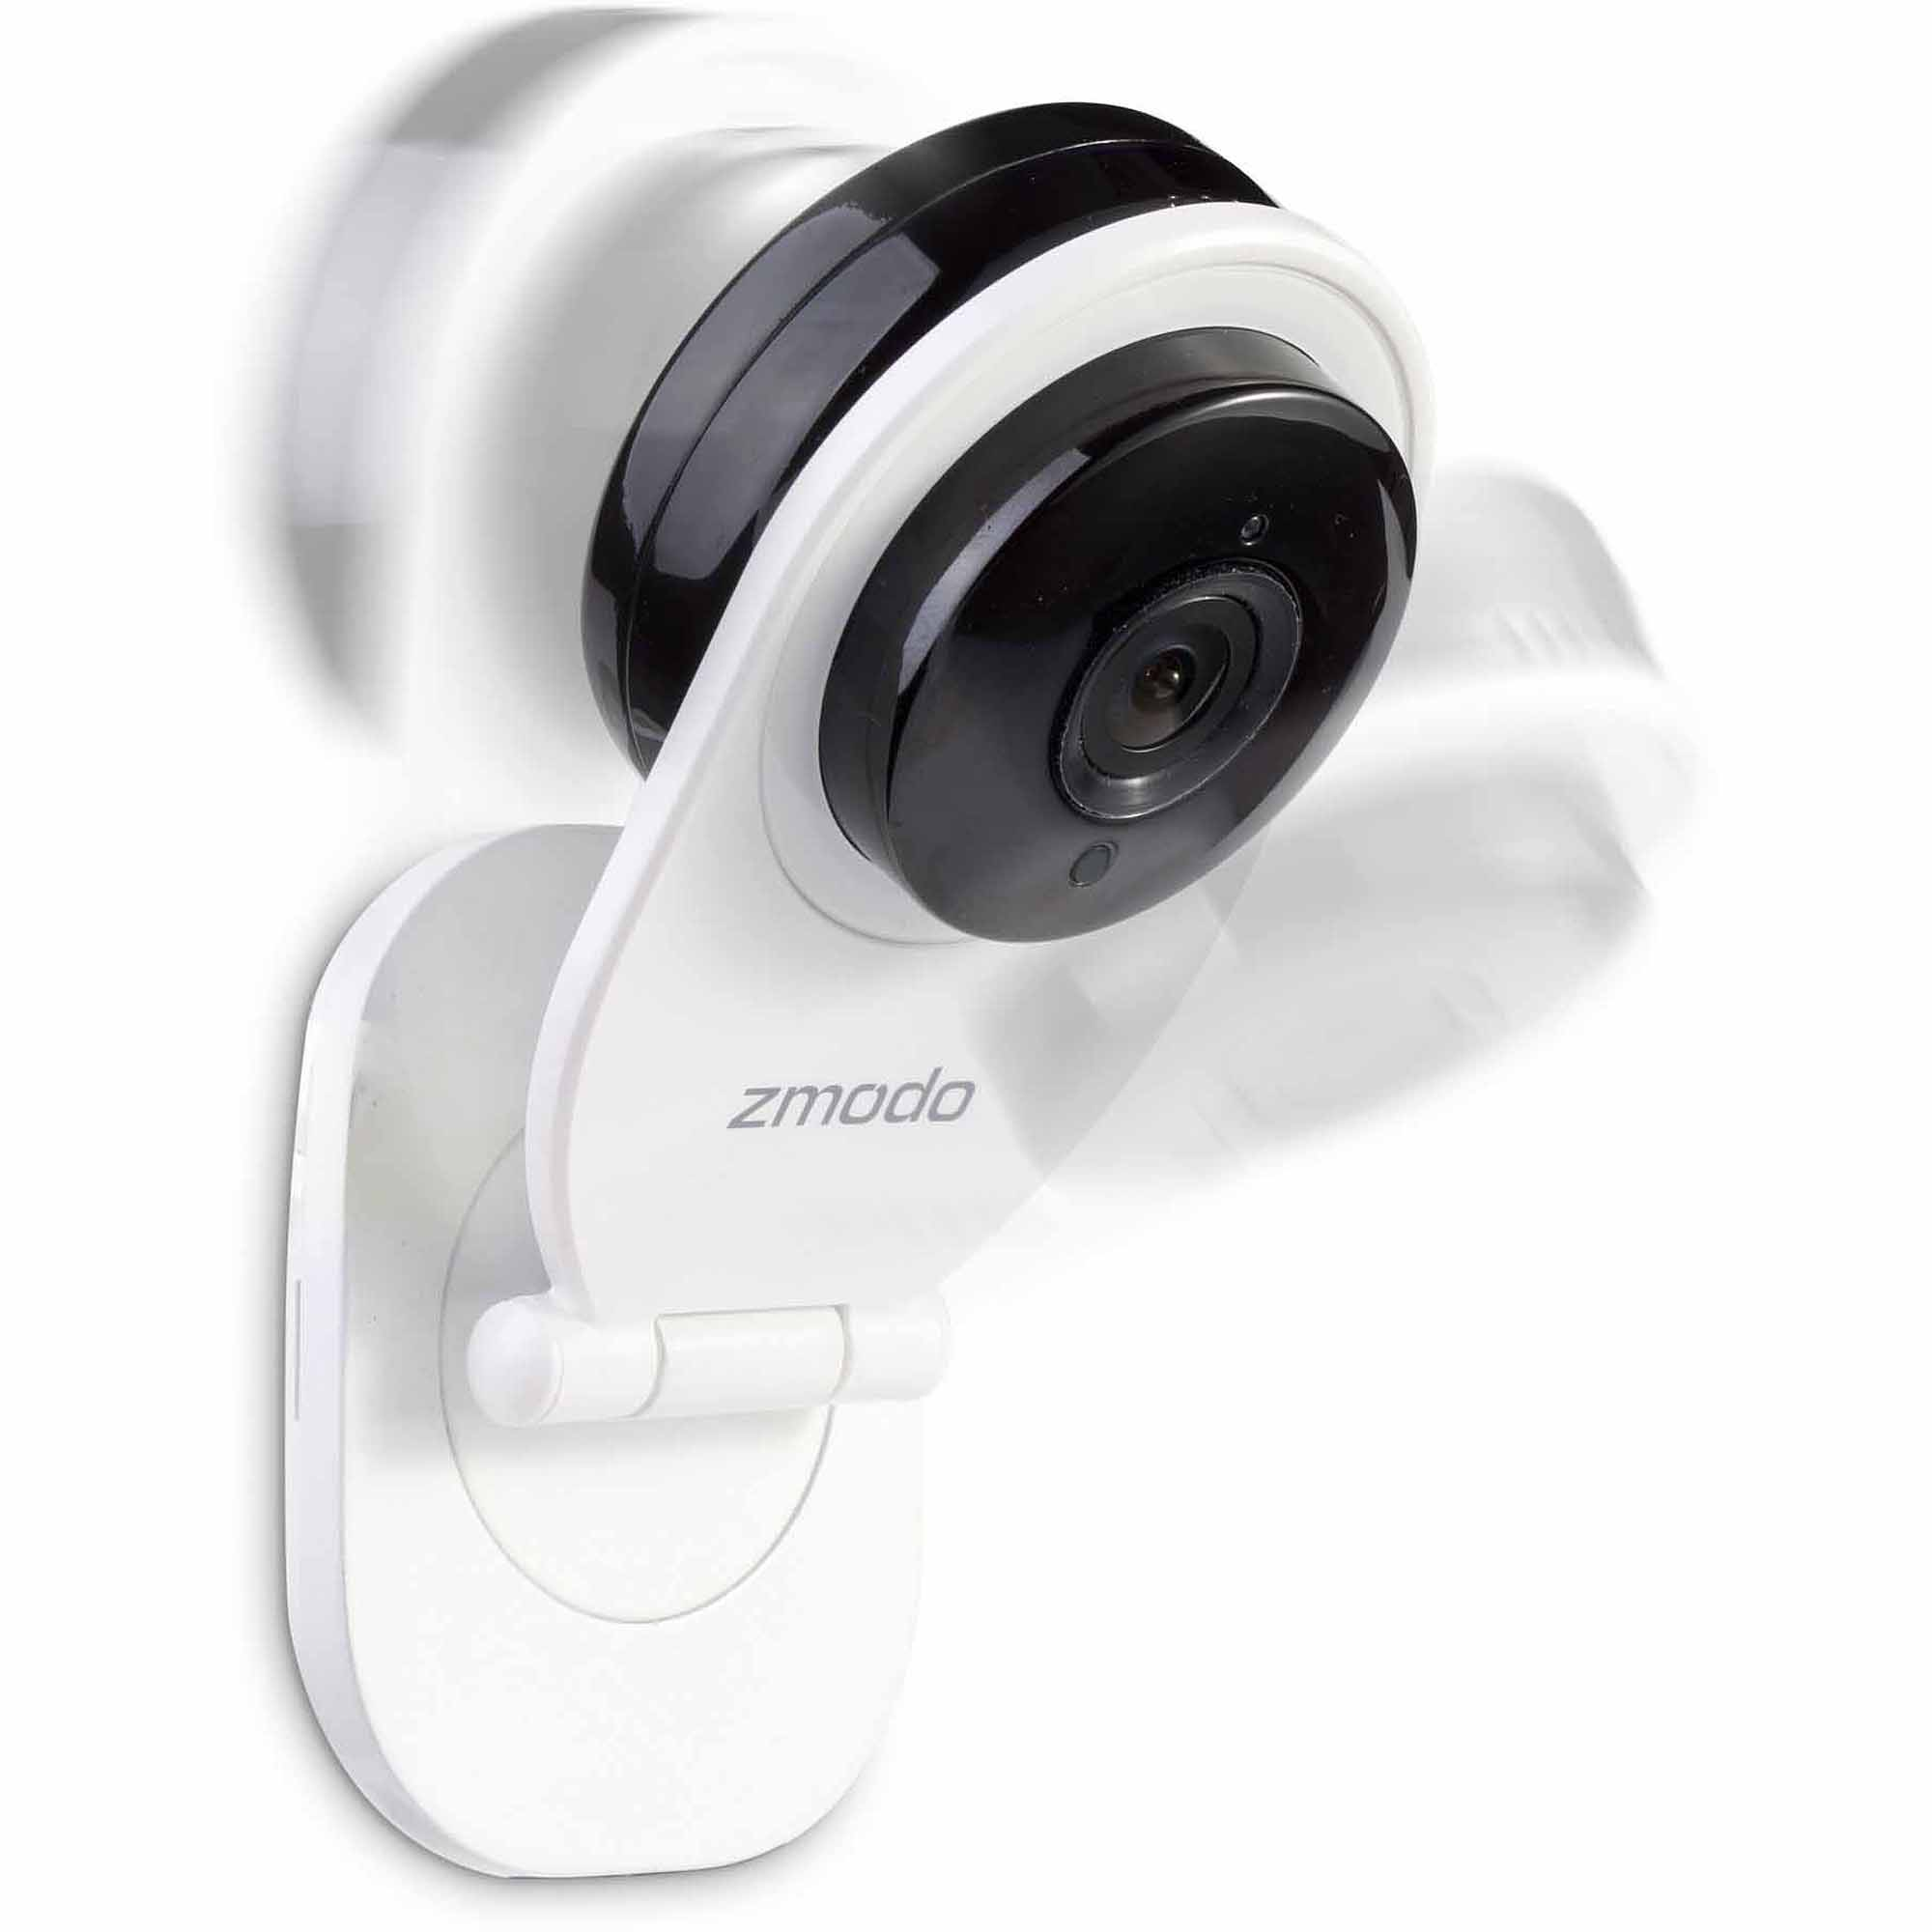 Cámaras De Vigilancia Zmodo 720p Wireless EZCam with 16GB SD Card + Zmodo en VeoyCompro.net